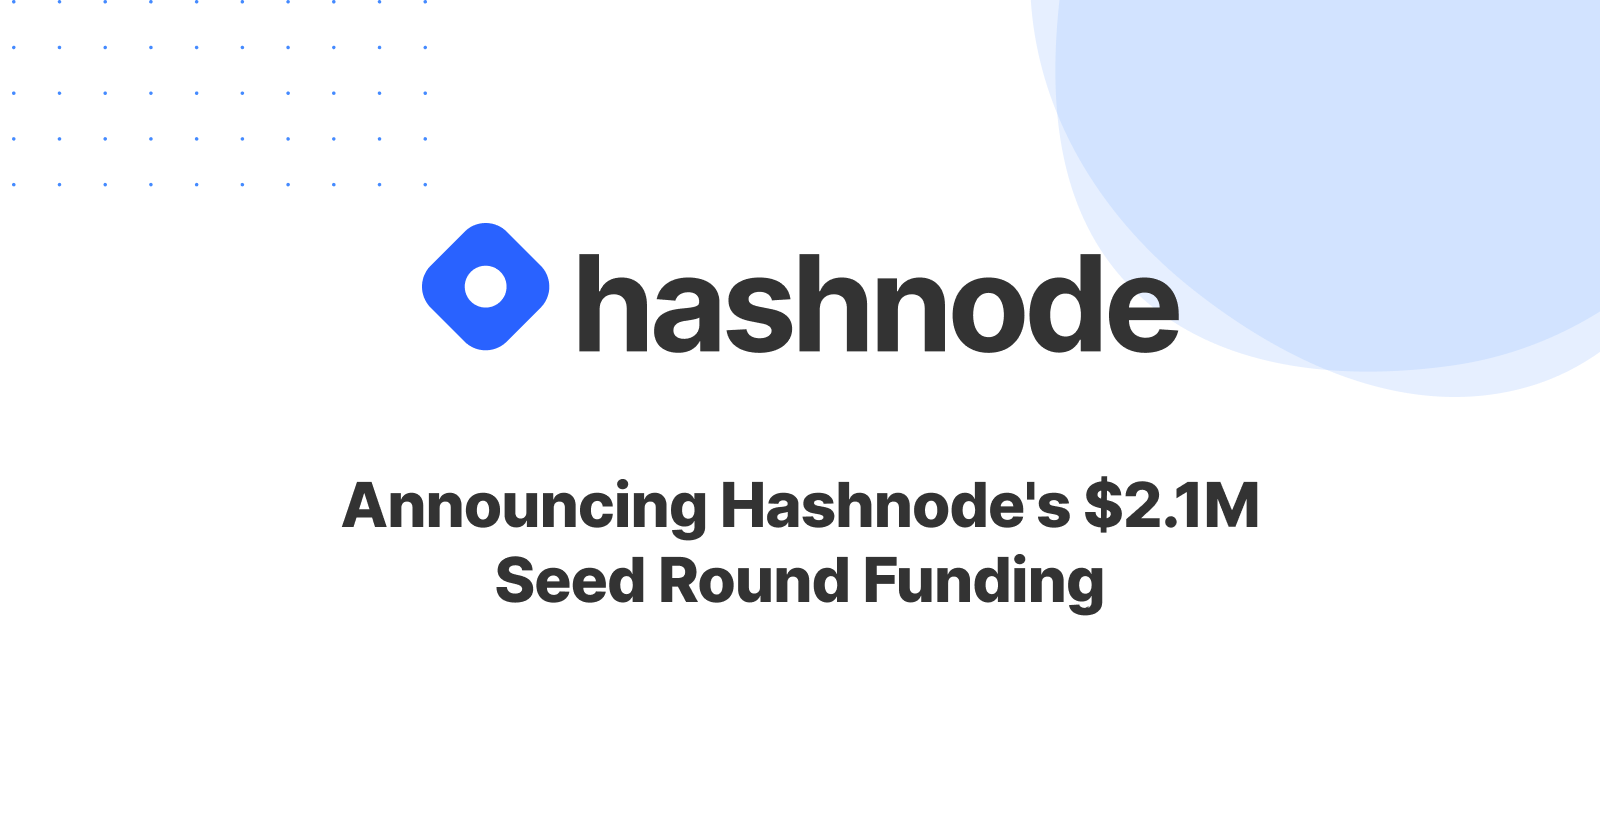 Announcing Hashnode's $2.1M seed round